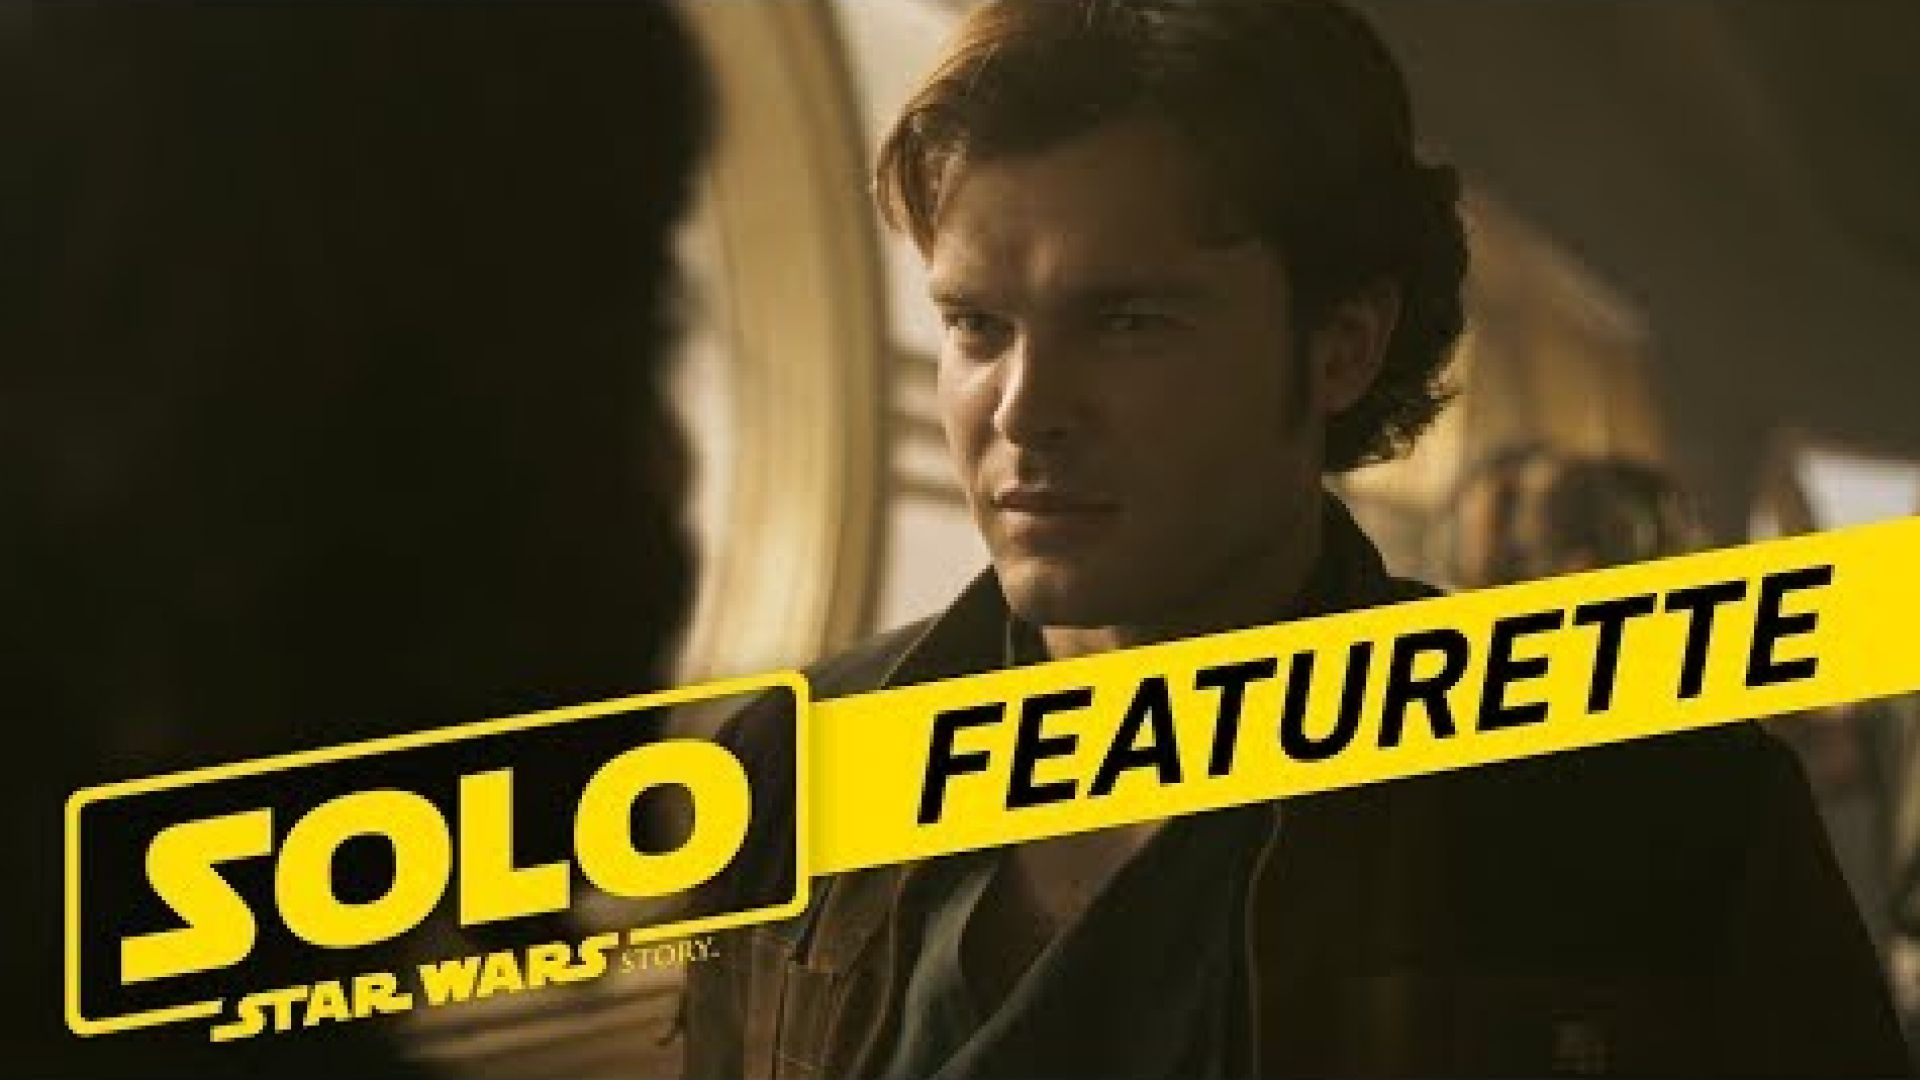 Solo: A Star Wars Story Becoming Solo Featurette